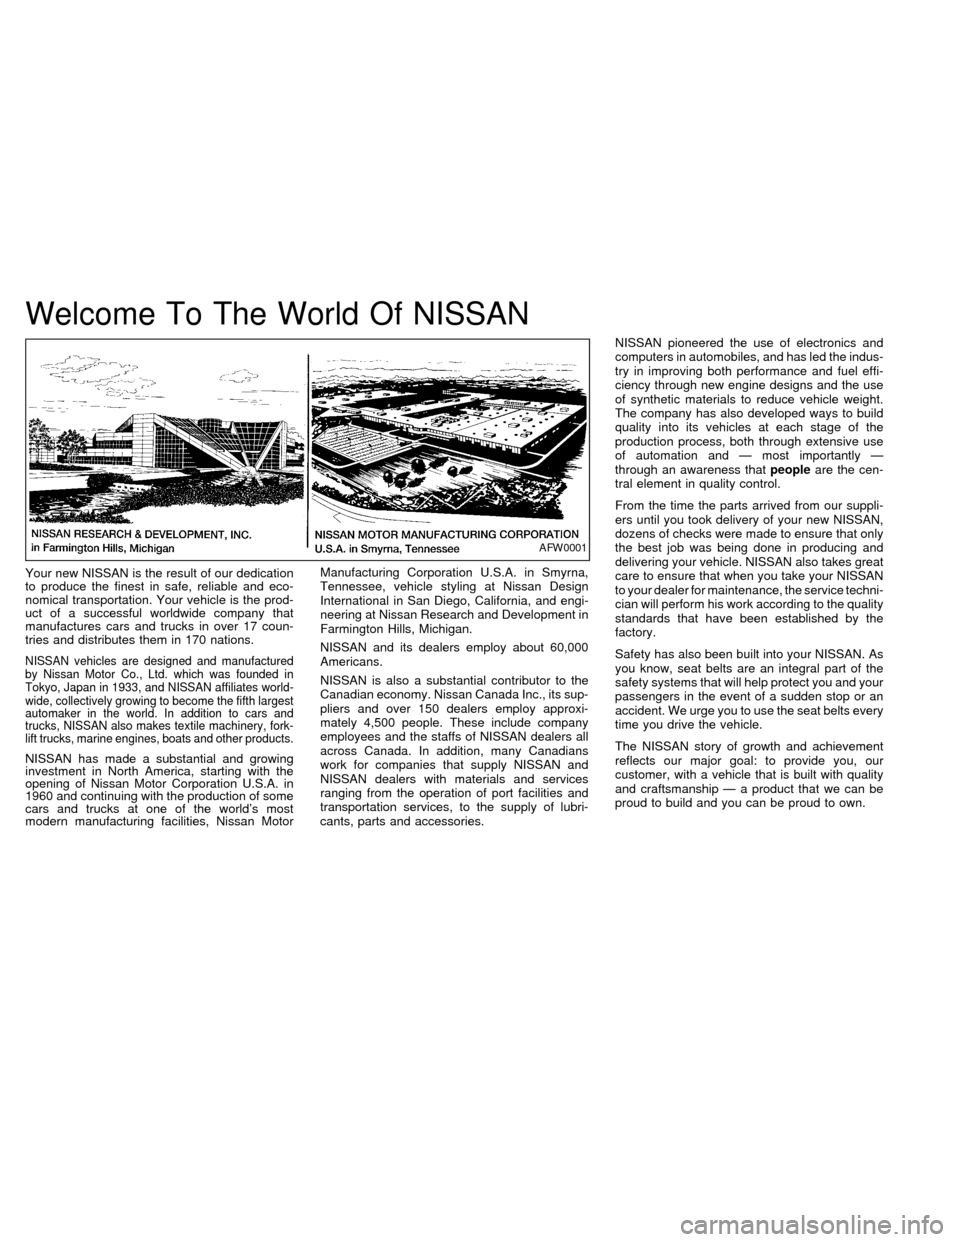 NISSAN QUEST 1999 V41 / 2.G Owners Manual